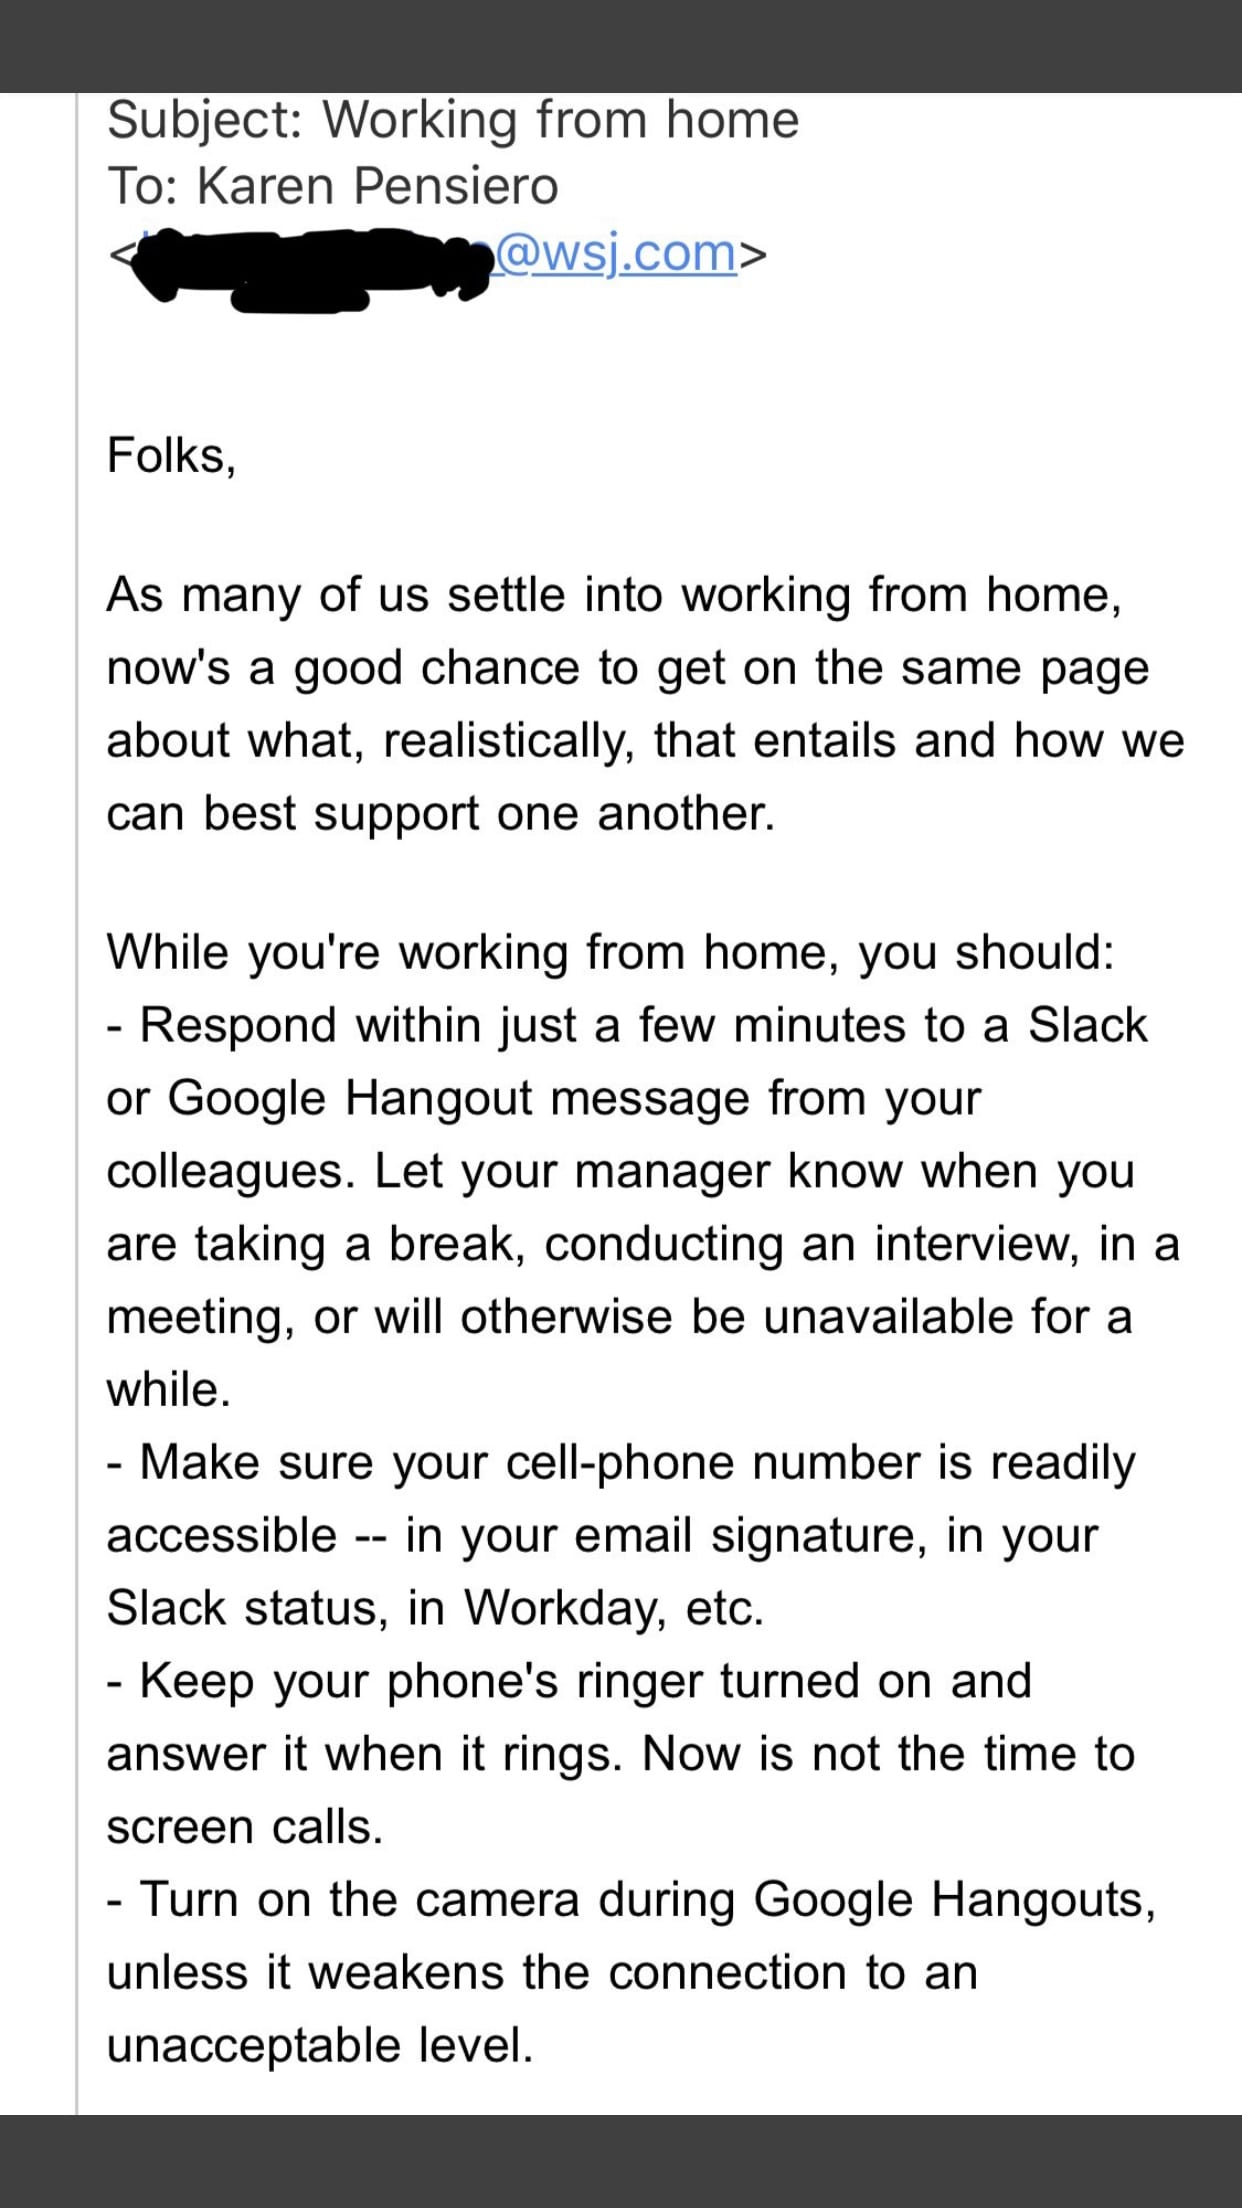 Example of corporate email about working from home